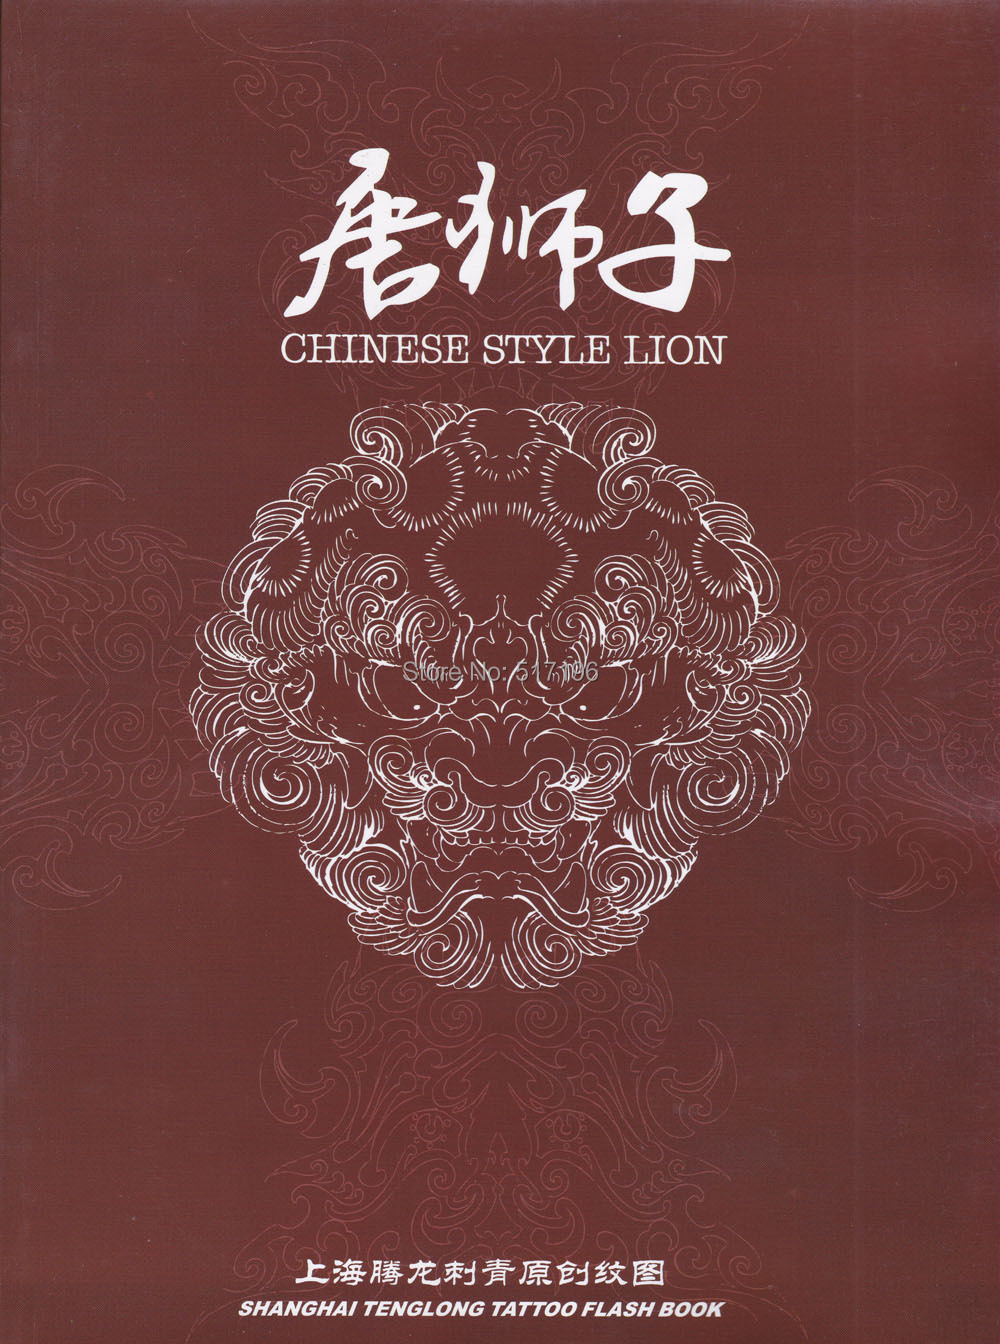 PDF Format Tattoo Book Tang Lions Tattoo Designs Book Lions Sketch Tattoo Flash Book Reference A4 Size Free Shipping(China (Mainland))